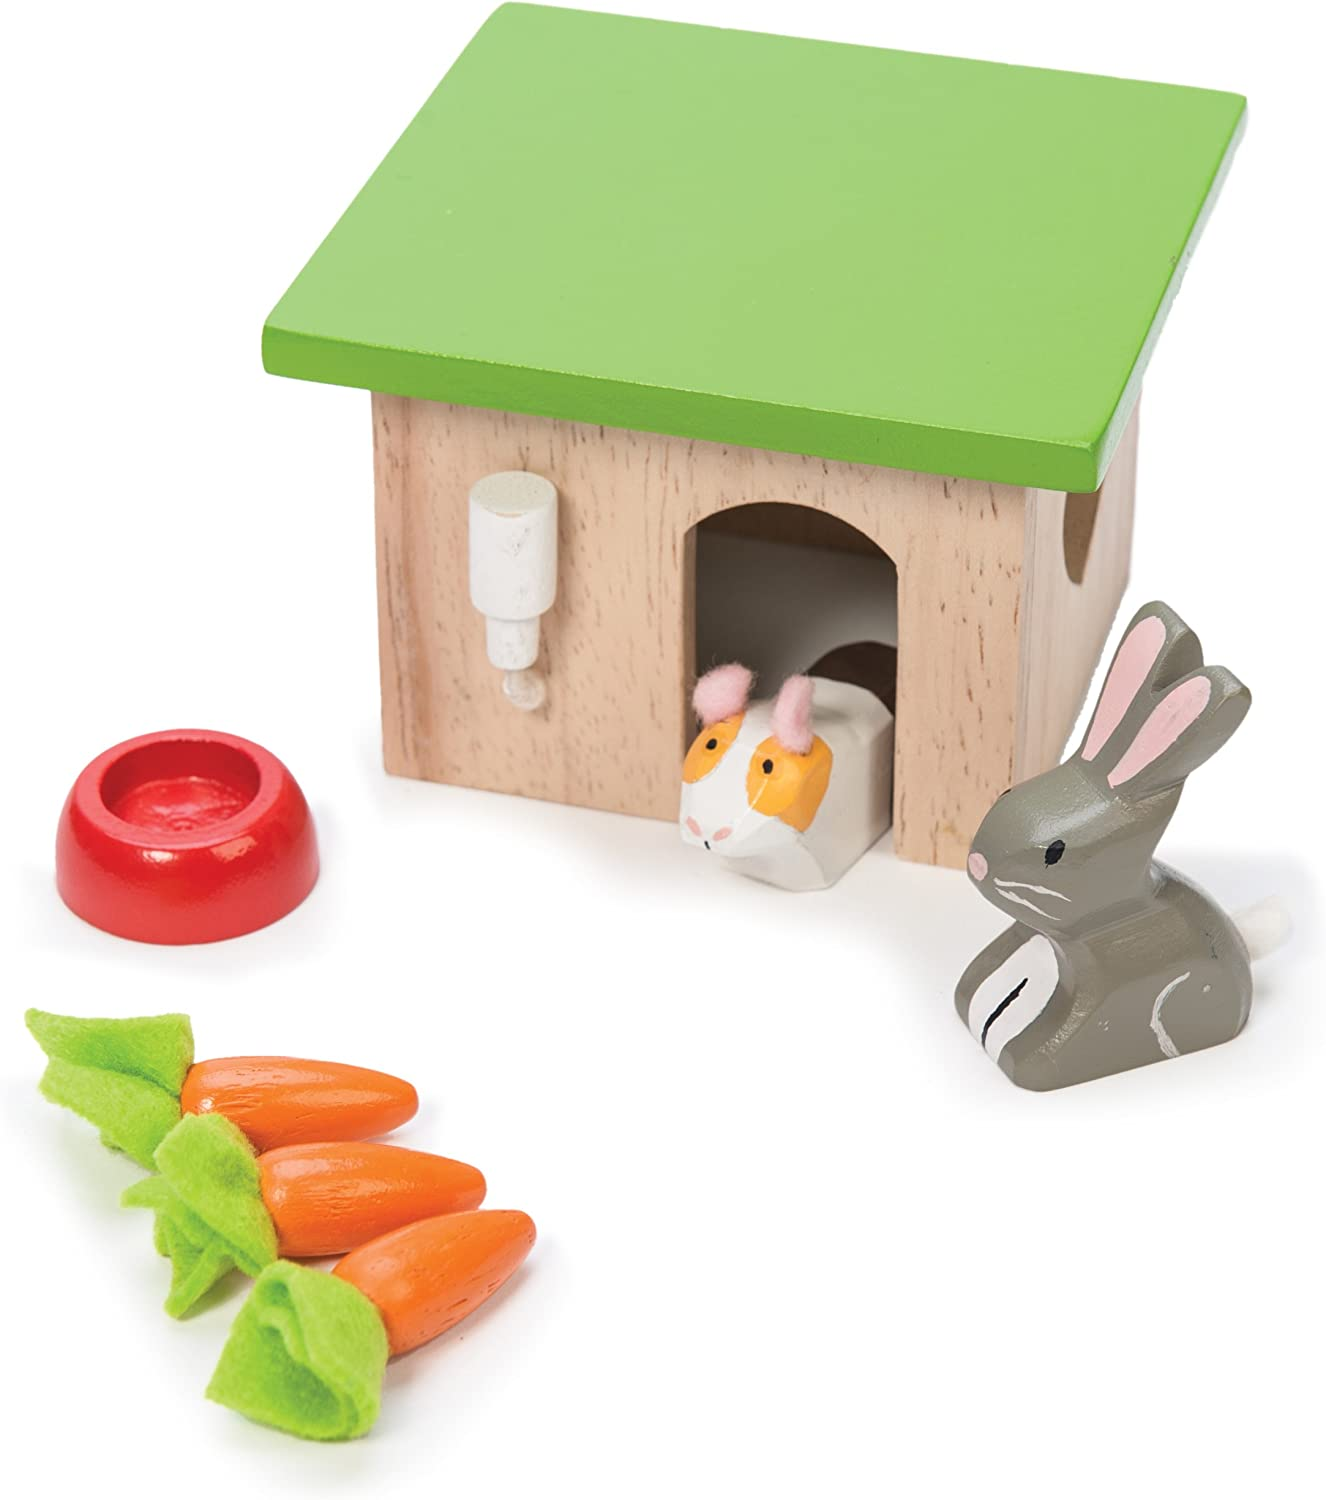 Le Toy Van - Adorable Wooden Daisylane Bunny & Guinea Accessories Play Set for Dolls Houses | Girls Dolls House Furniture Sets - Suitable for Ages 3+ (ME045)